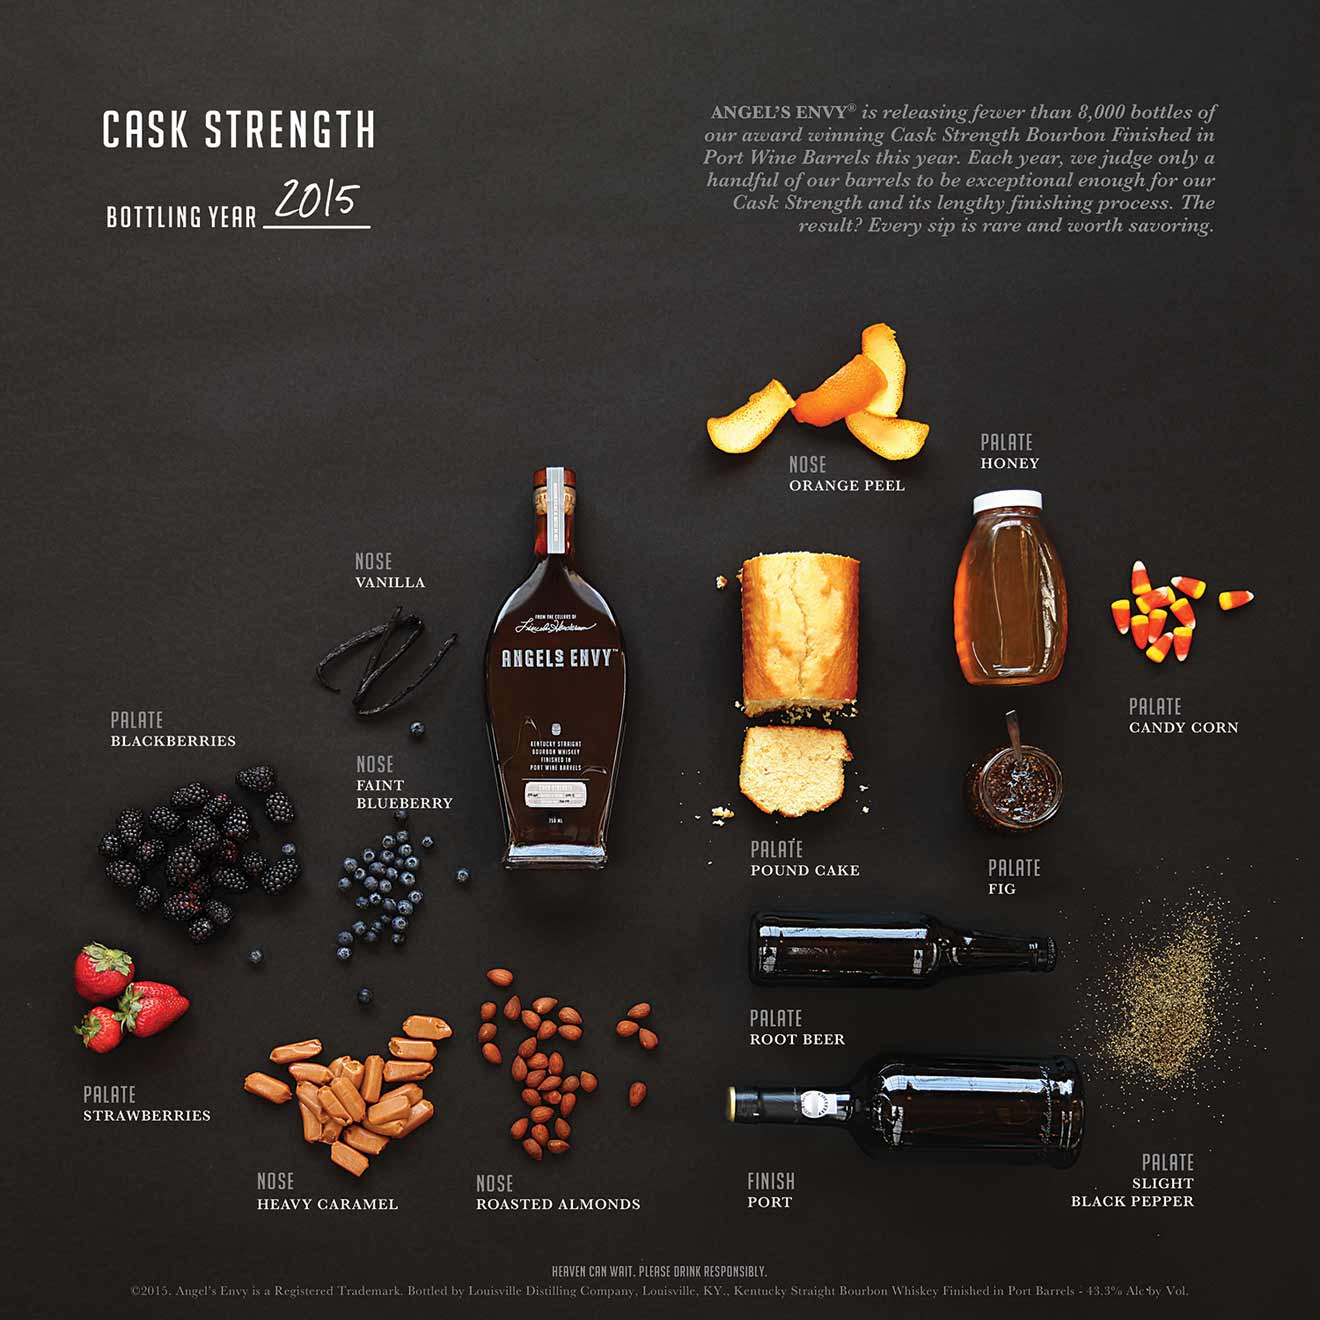 Angel's Envy Cask Notes infographic